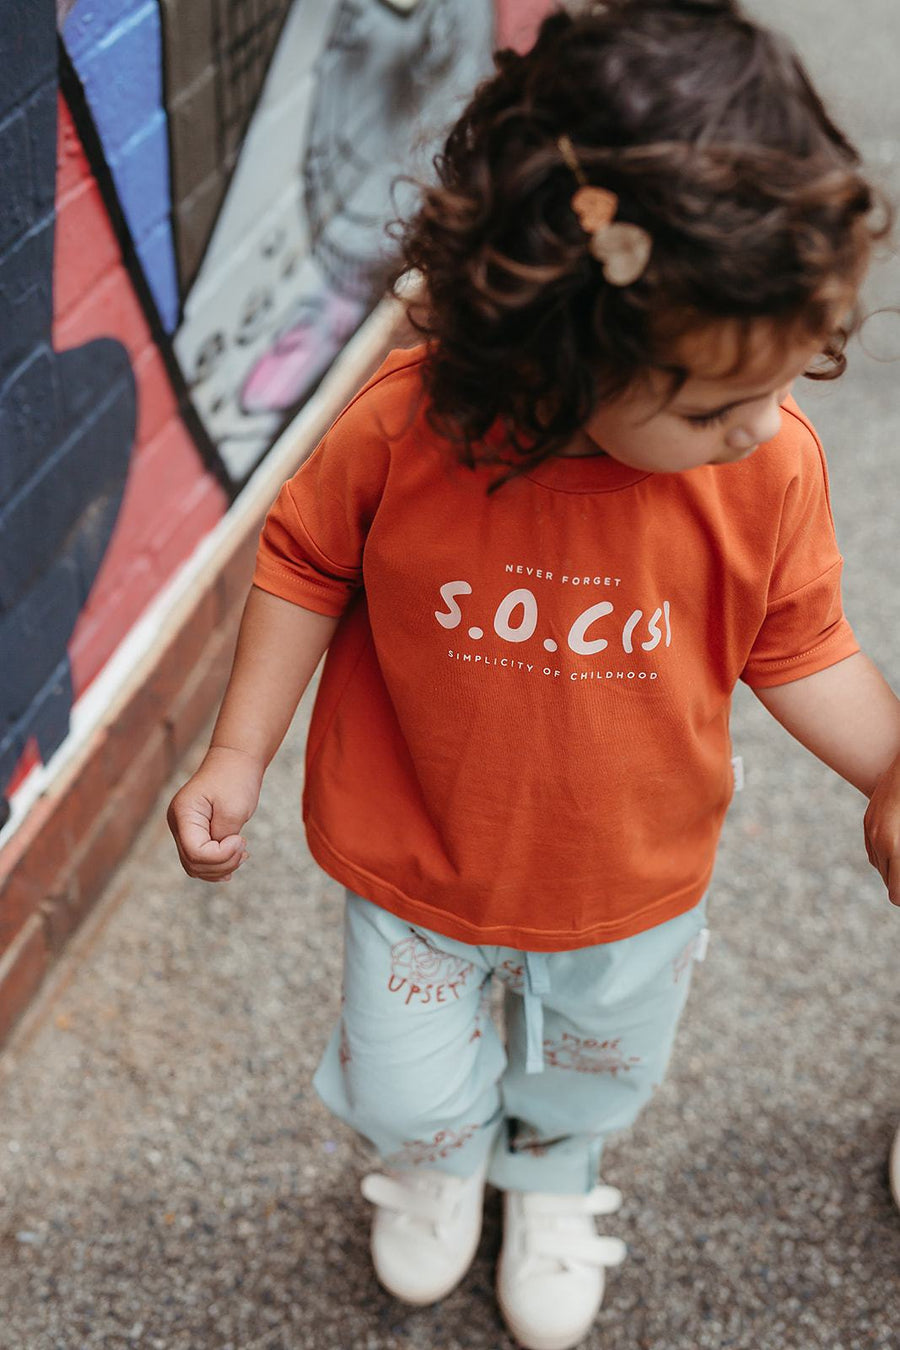 Simplicity of Childhood (SOC) Boxy Tee